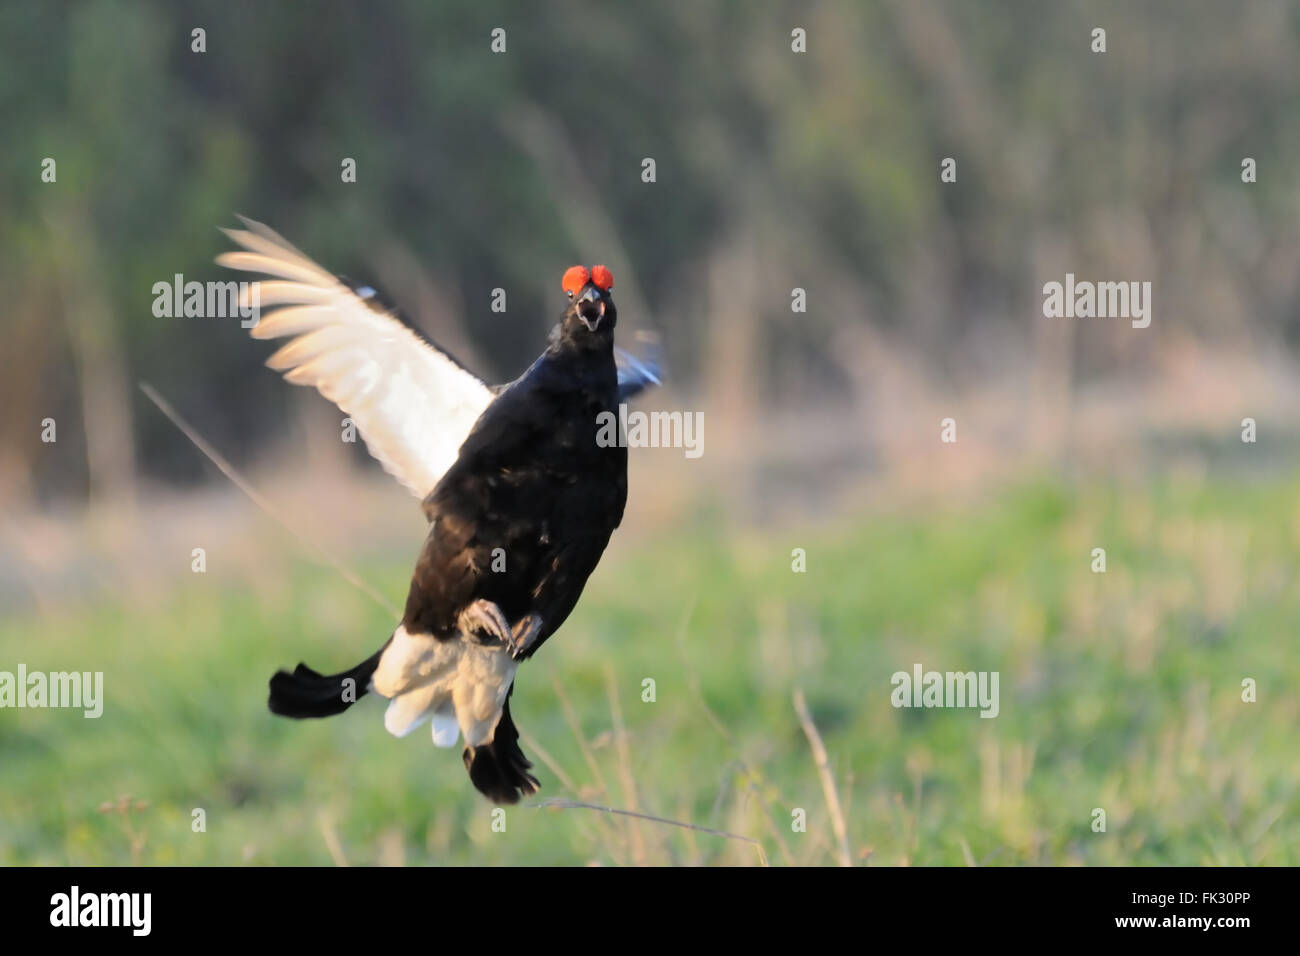 Courtship display of jumping male Black grouse (Tetrao tetrix). Moscow region, Russia - Stock Image